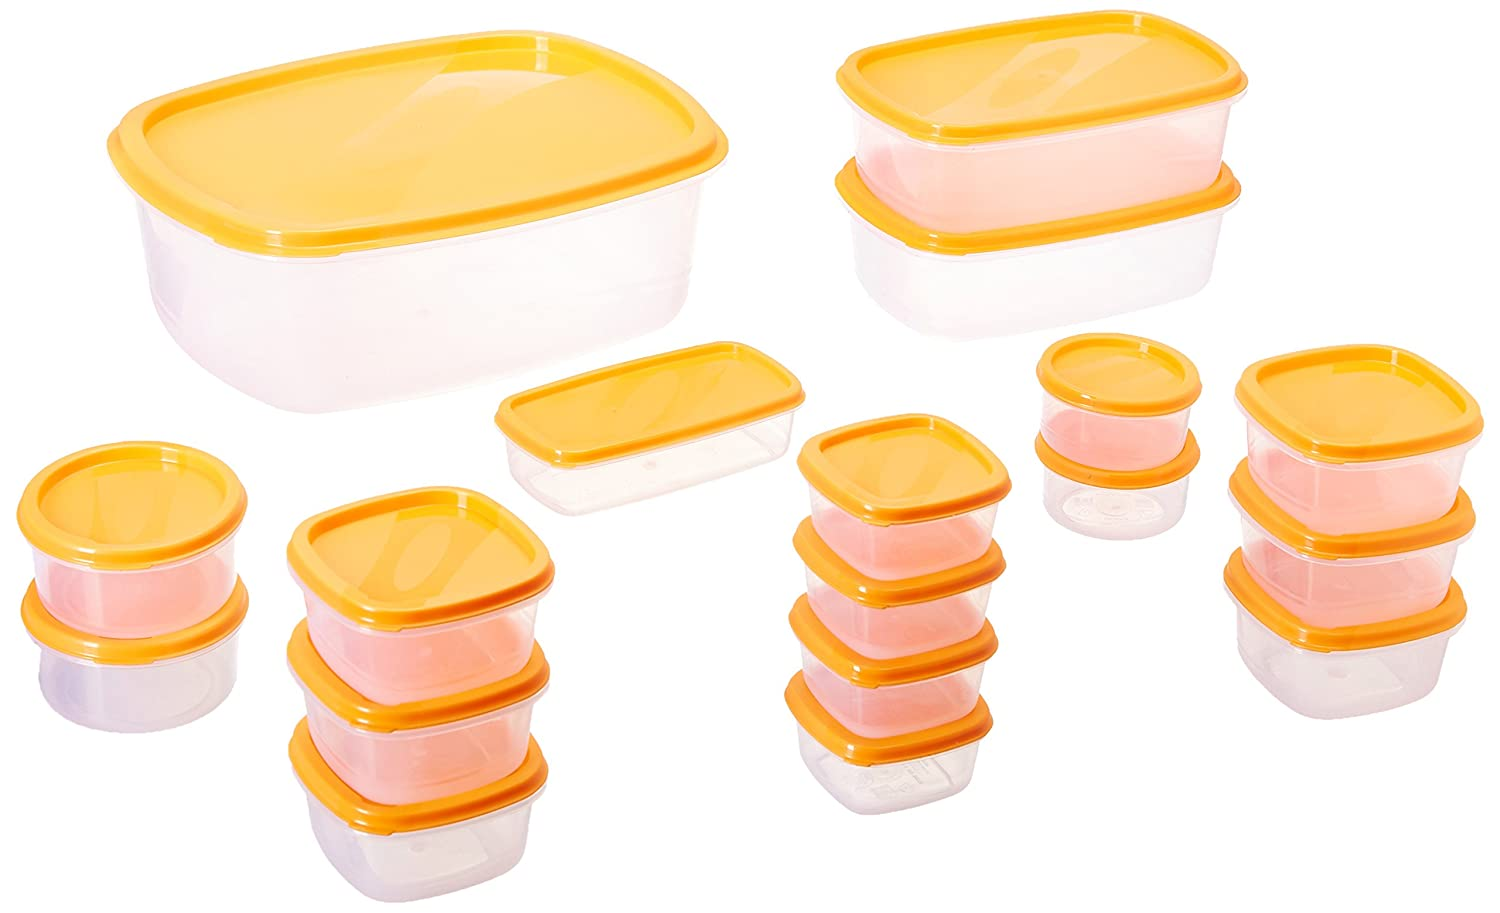 Best Offer Container Set, 18-Pieces at 249 MRP 529